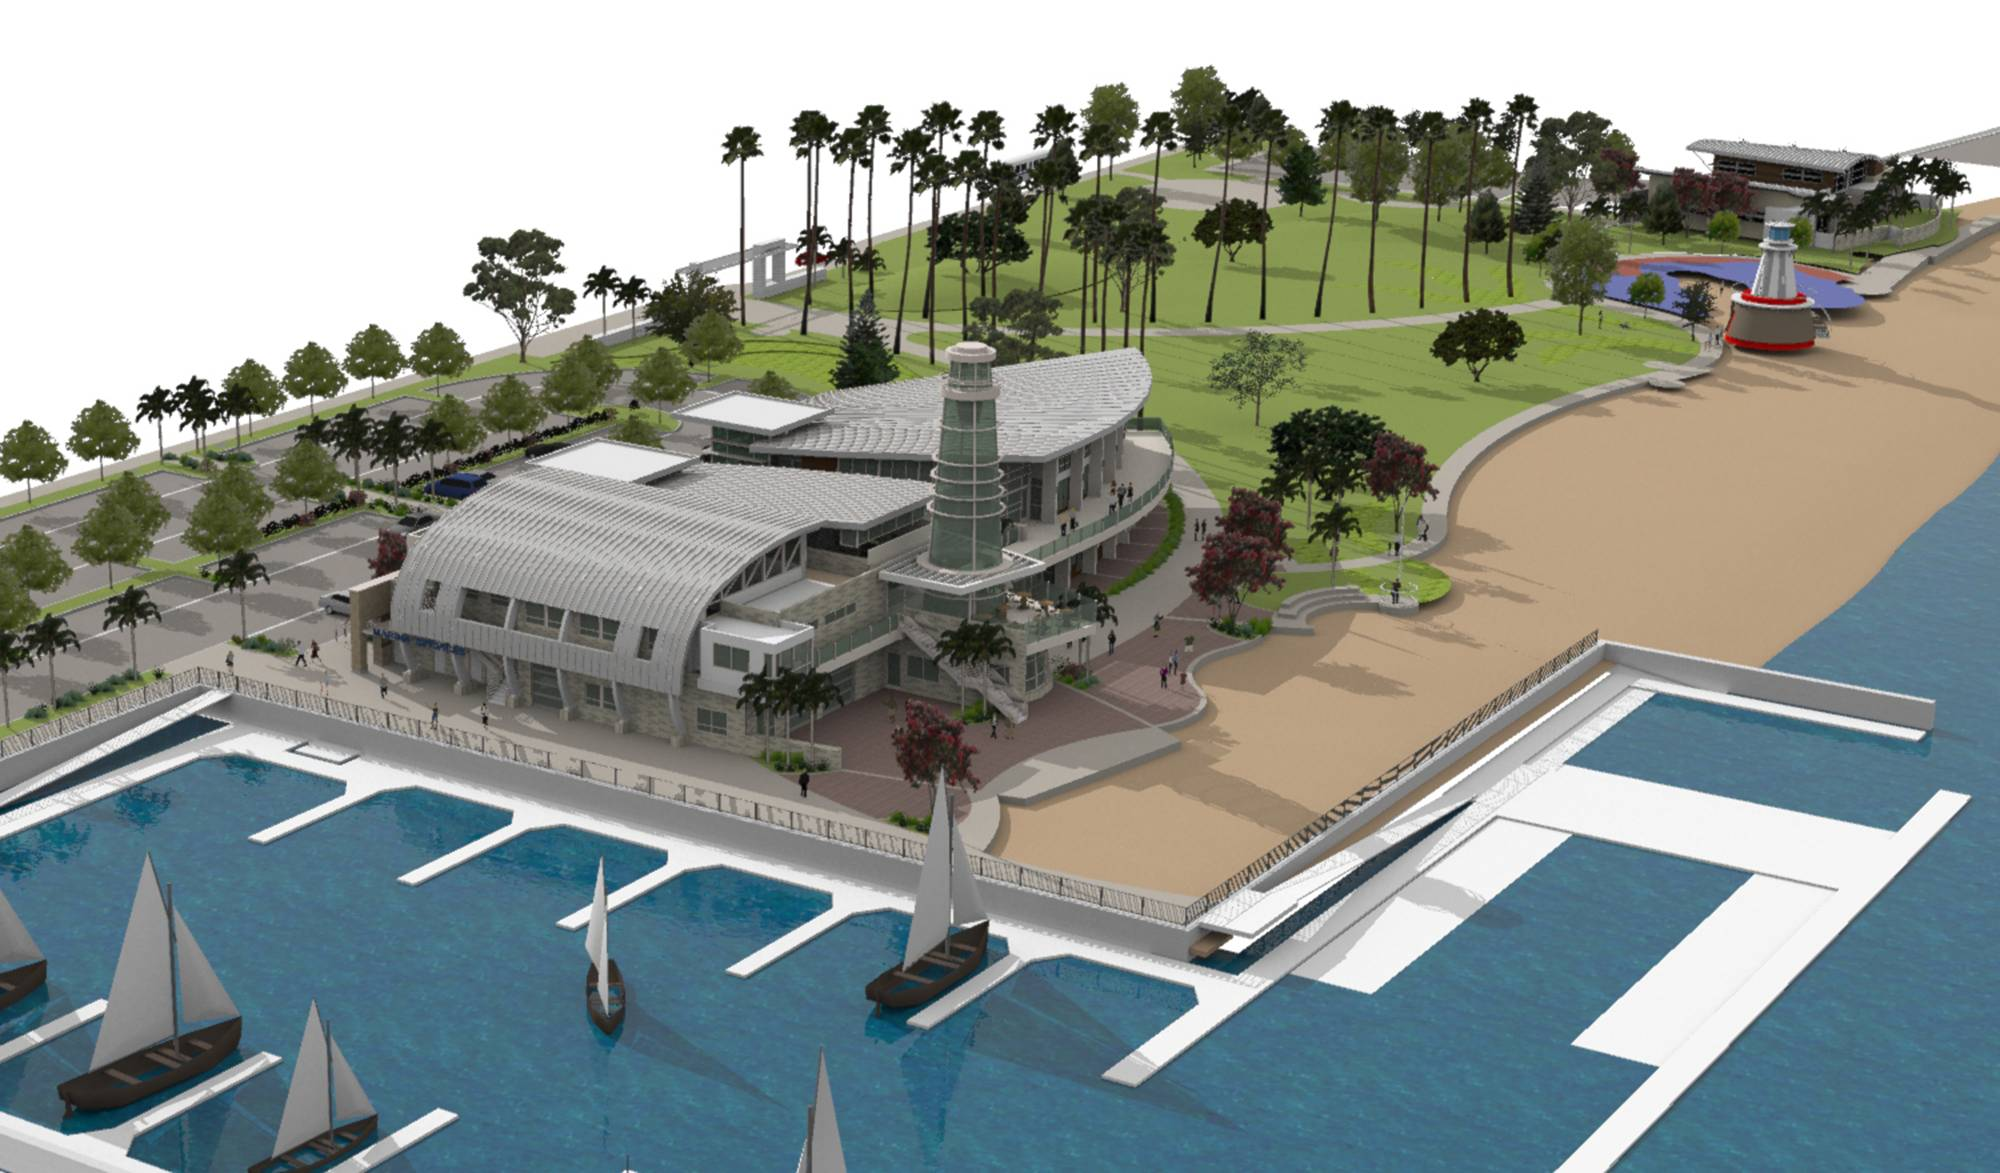 Marina Park Project Set for Ground Breaking